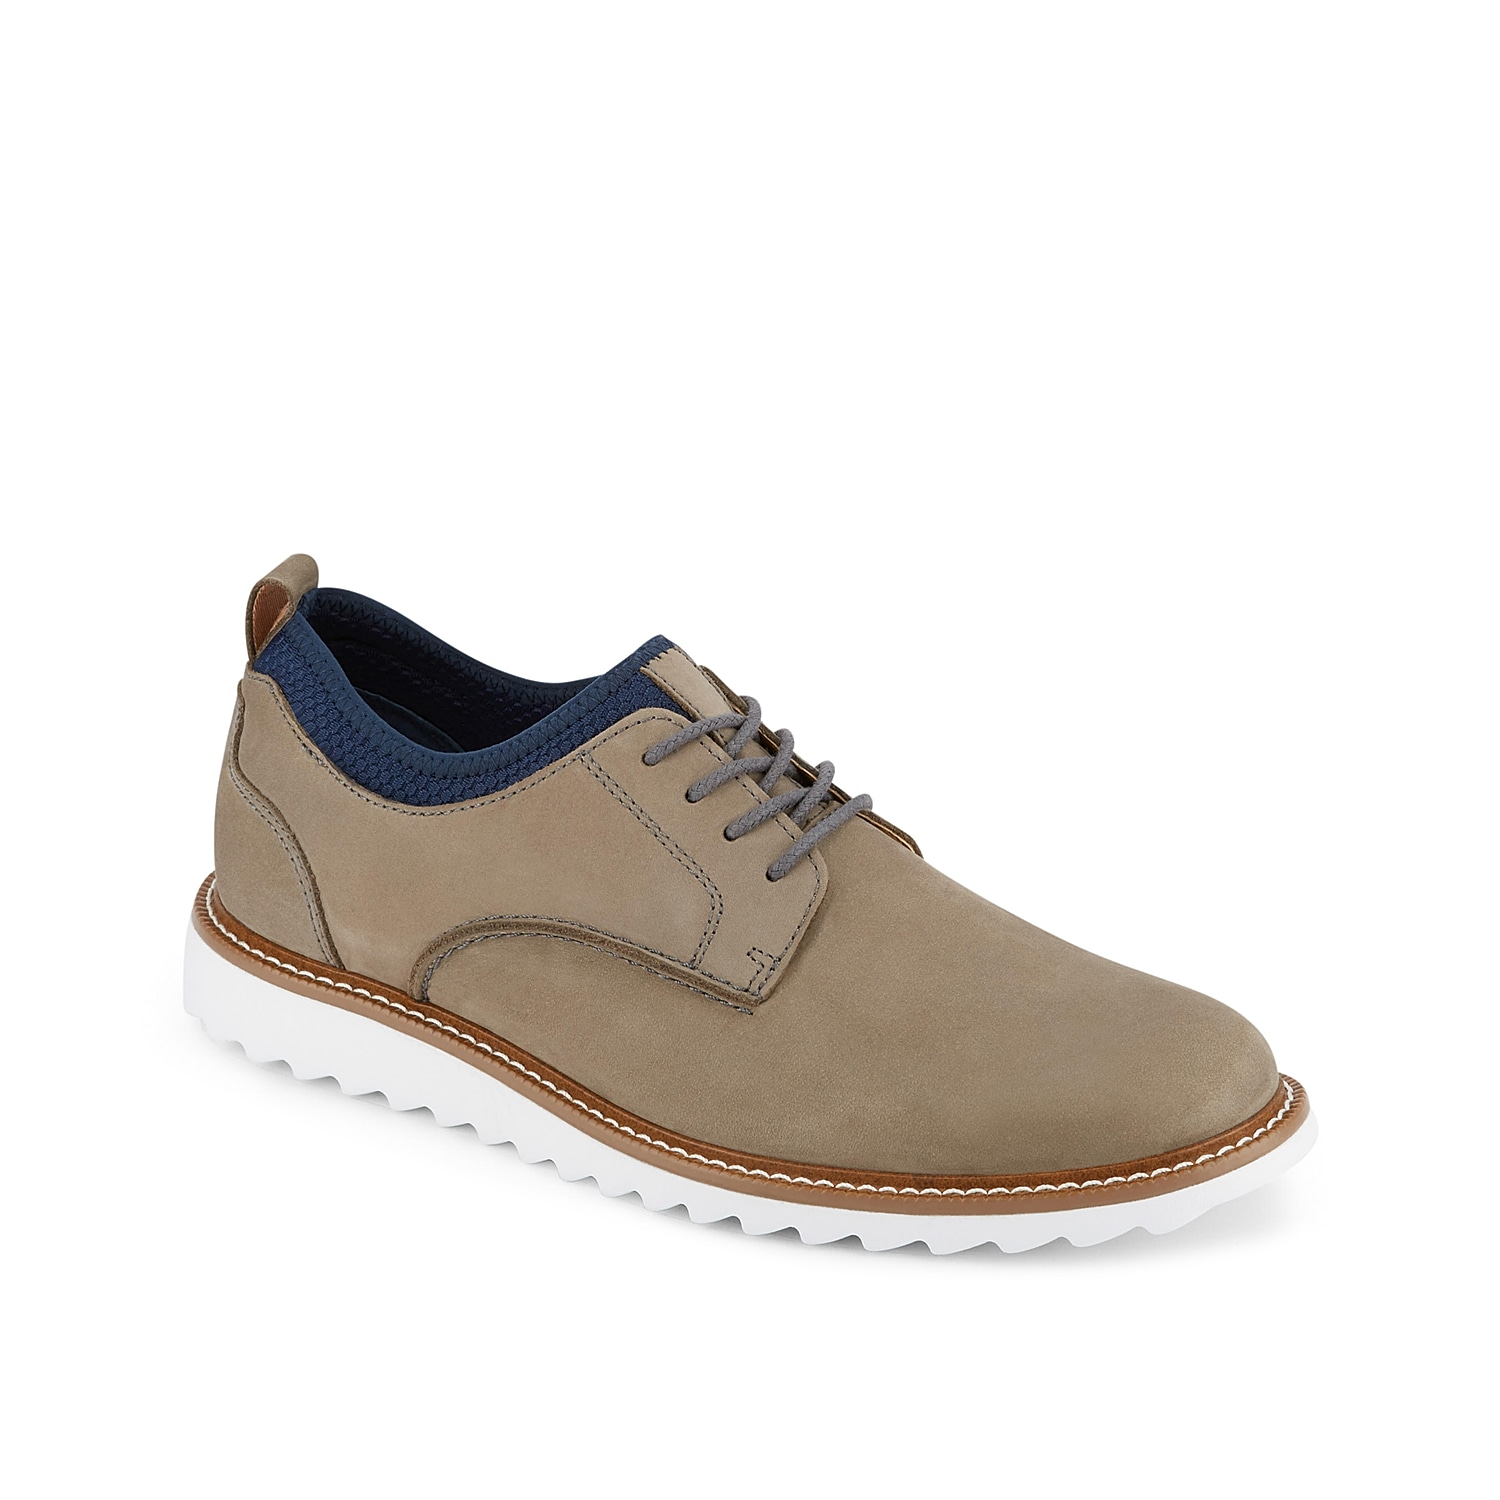 Update your oxford collection with trendy appeal with the Flemming from Dockers. Featuring a sporty mesh collar and sawtooth EVA sole, this lace-up can be dressed up or down for any outfit.